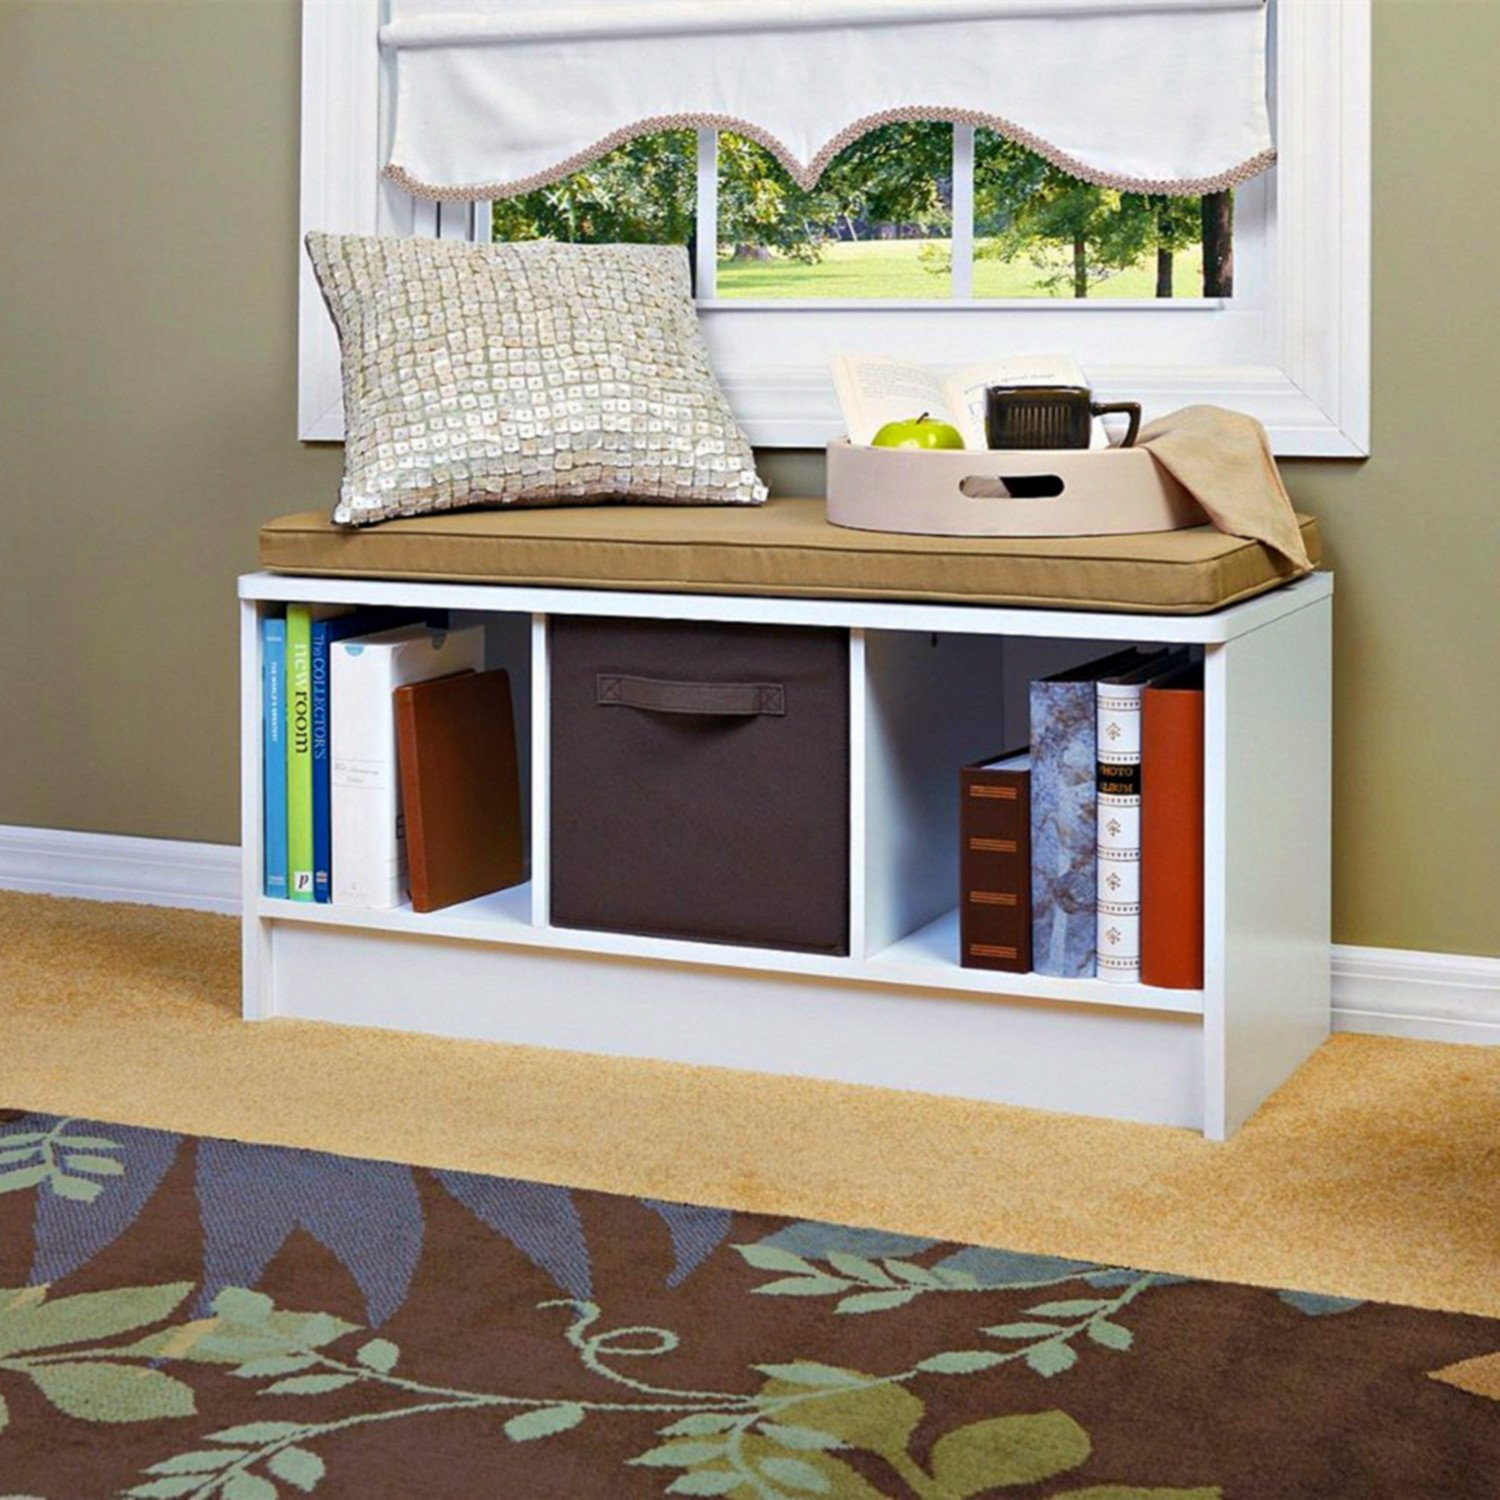 worth solution pinning pillows playroom cushion cube bench with and storage